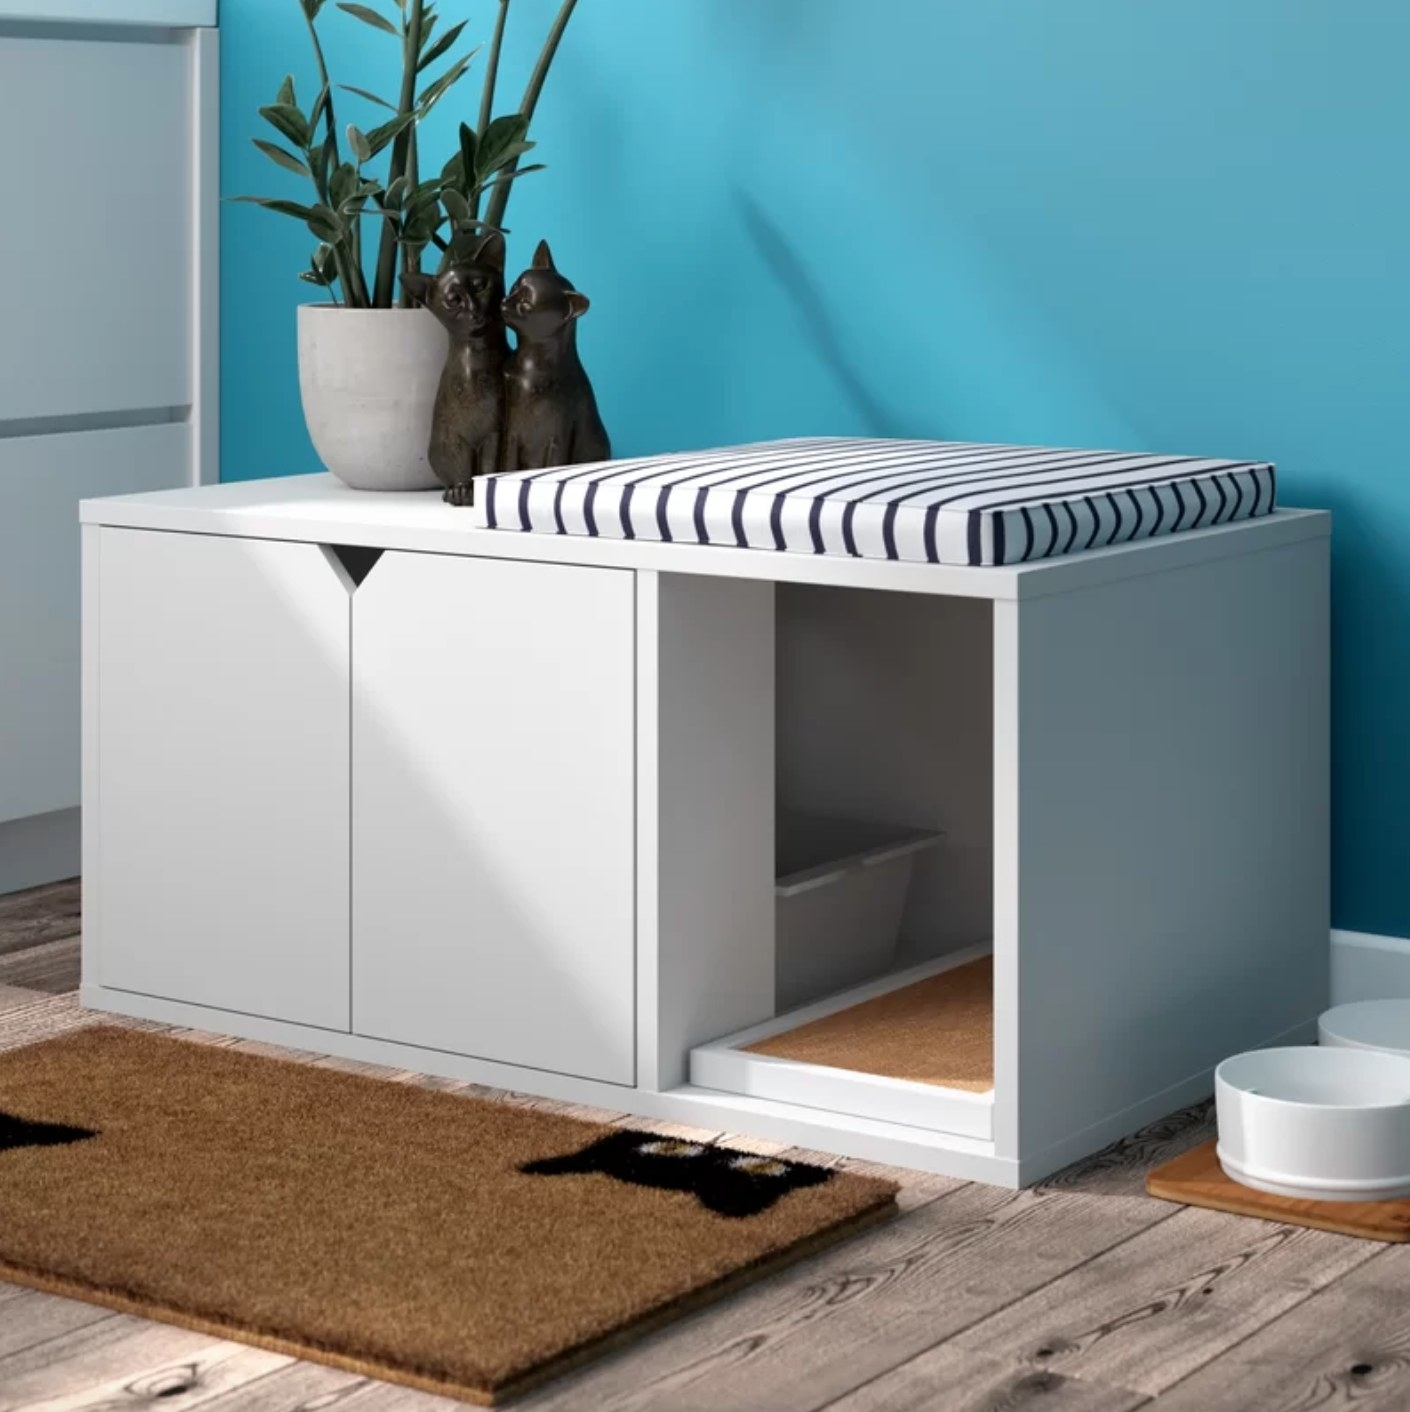 The litter box enclosure in white